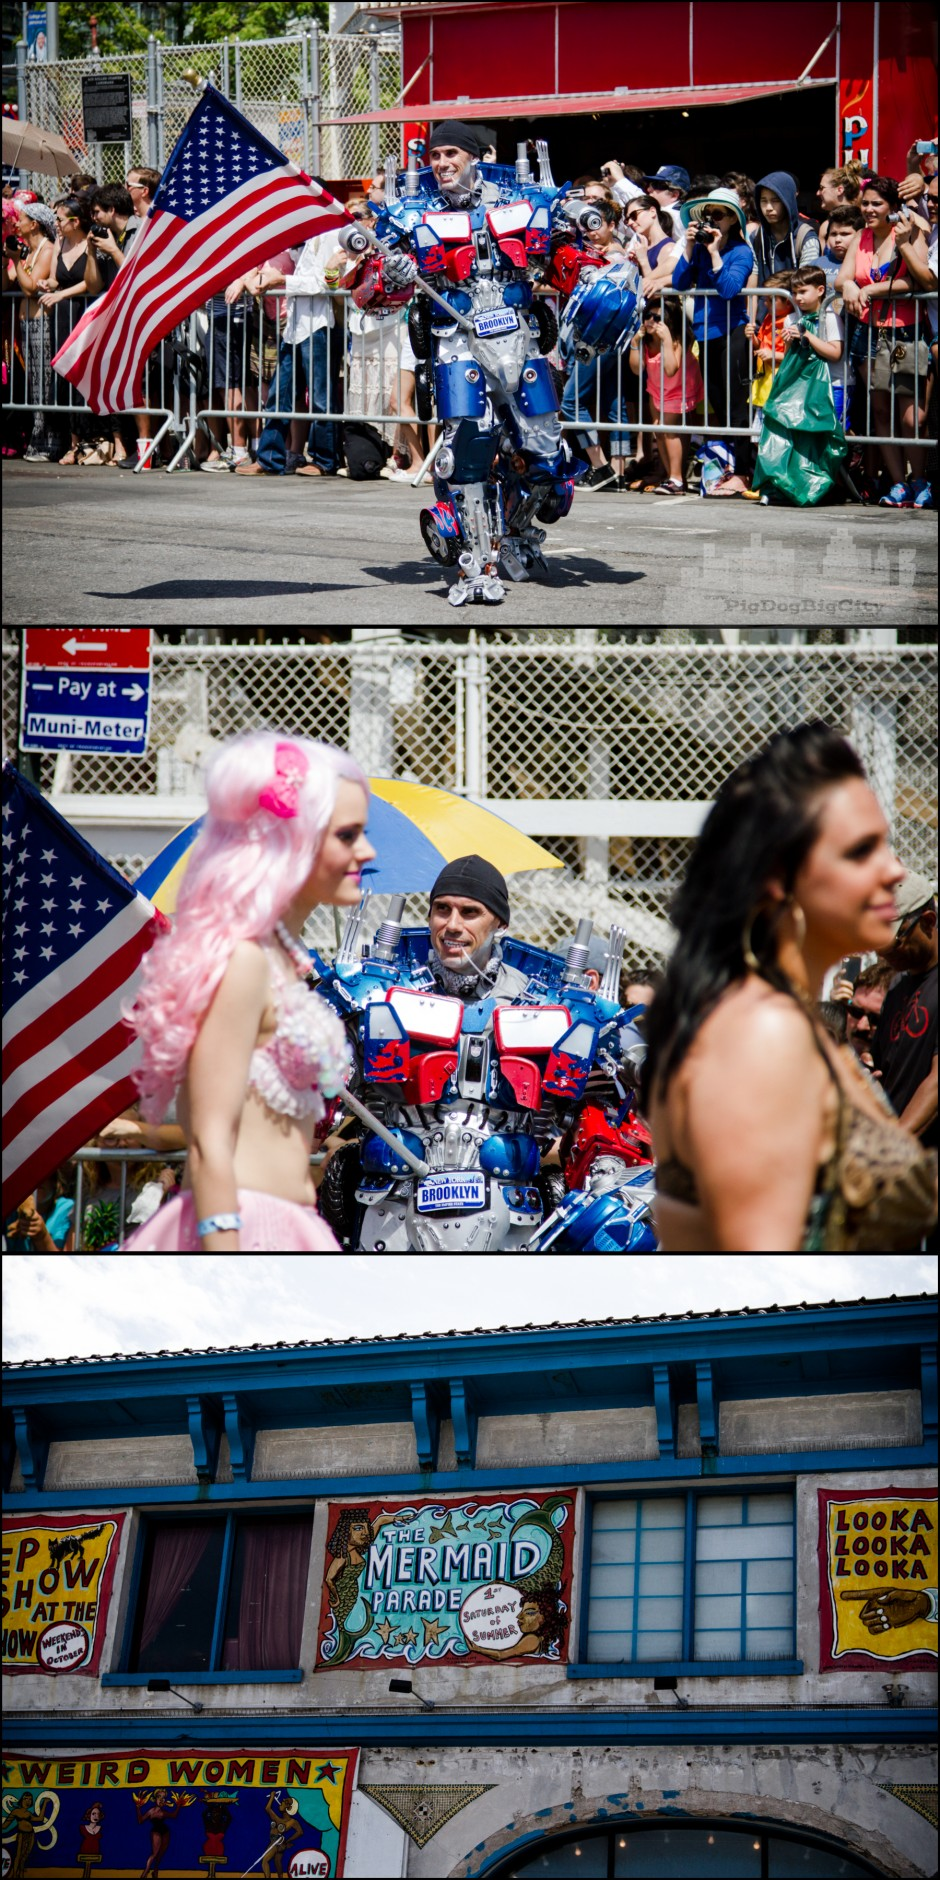 Mermaid Parade 22